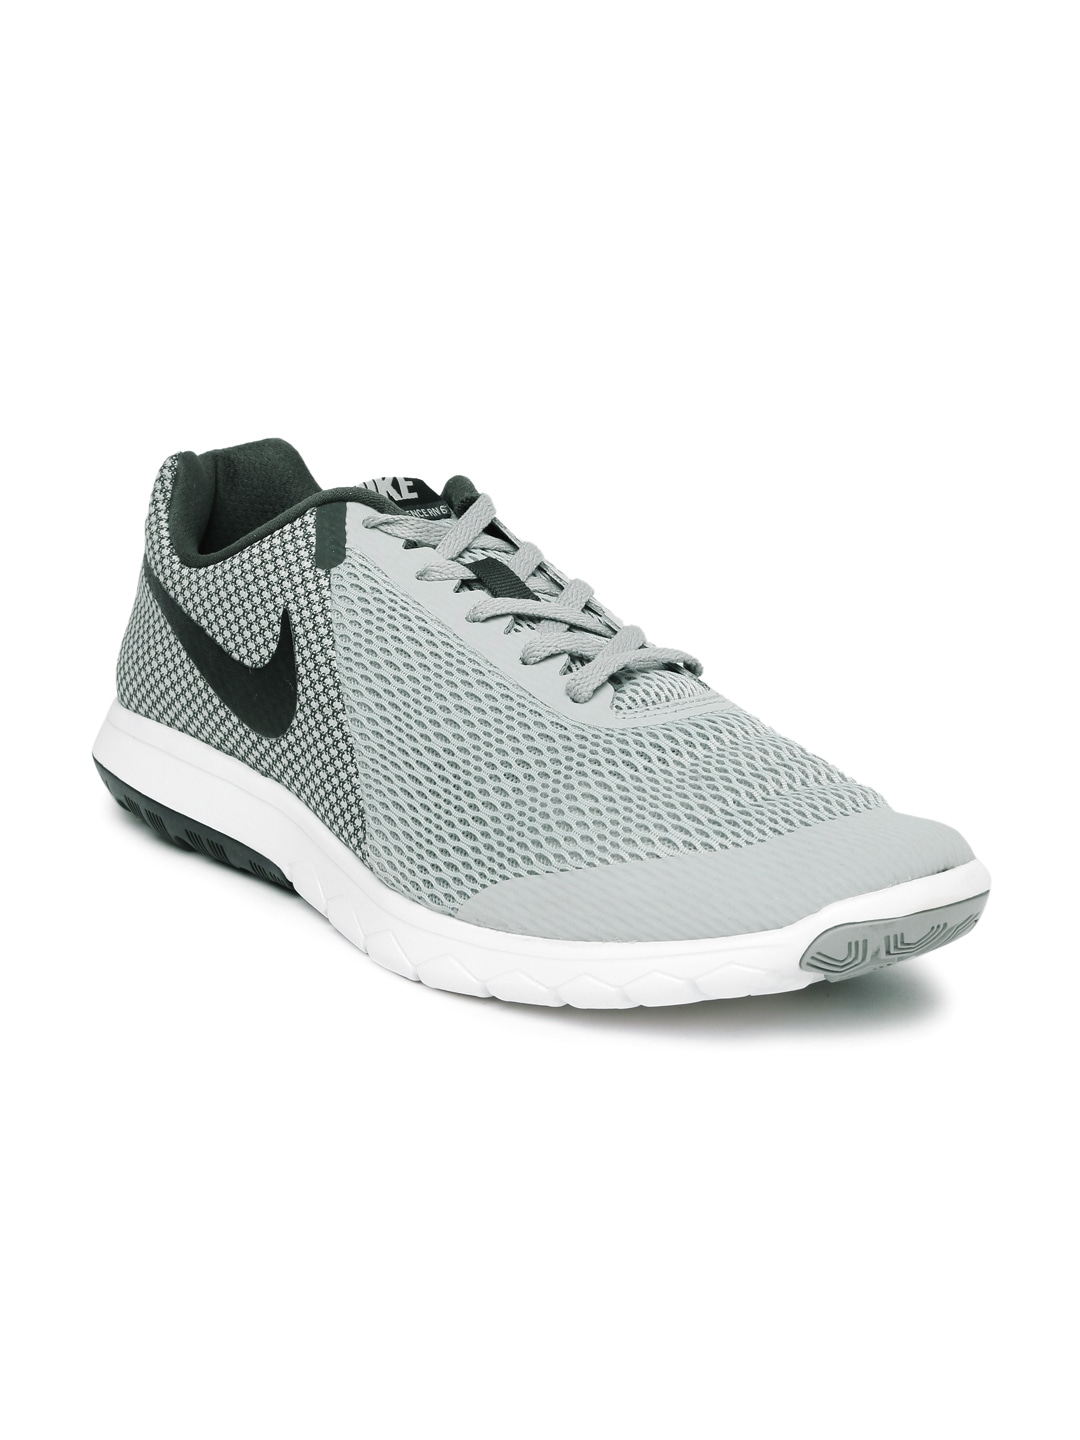 Innovative Nike Women Shoes Outlet USD! Running Shoes Online,all Goods Are Discount More Than Shoes,I Feel So Nice!I Am Very Happy This Running Shoes Store Discover Womens Trainers And Sneakers With ASOS From Trainers To Plimsolls And